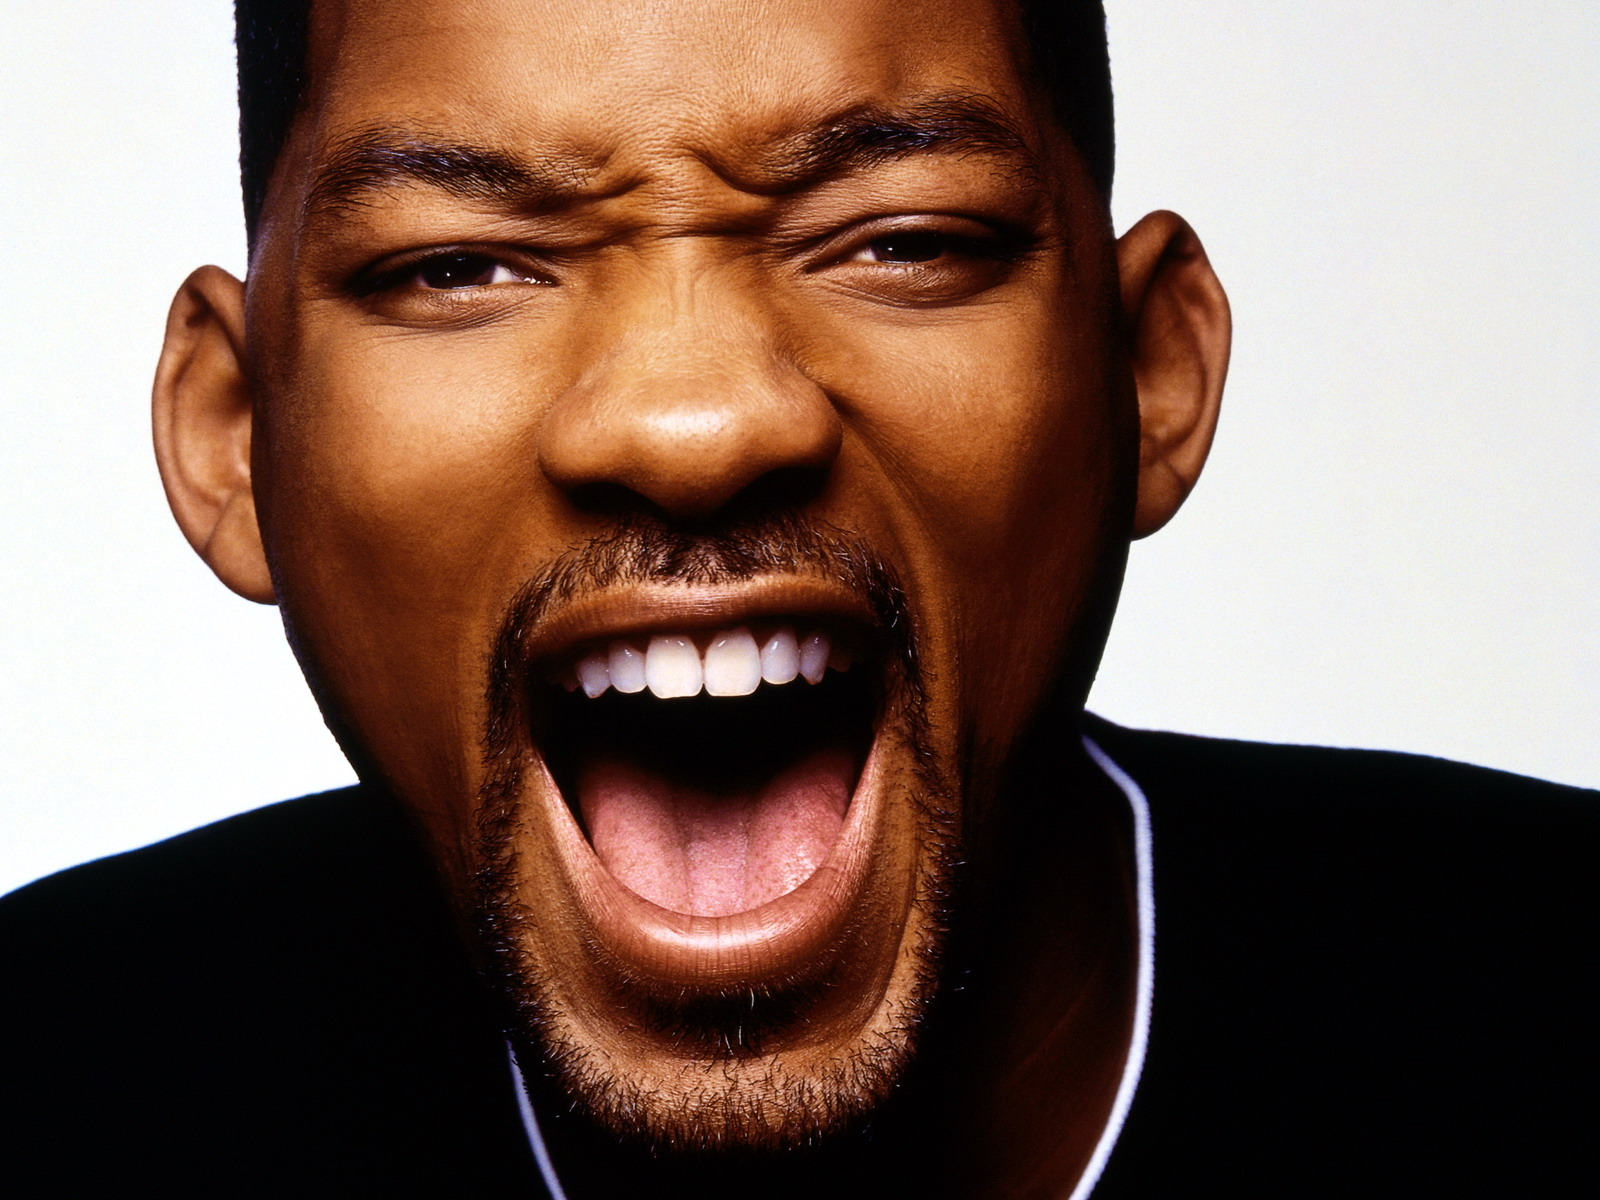 """DON'T BE AFRAID TO DIE ON THE TREADMILL!"" - WILL SMITH SHARES HIS KEYS TO SUCCESS (MOTIVATIONAL VIDEO)"